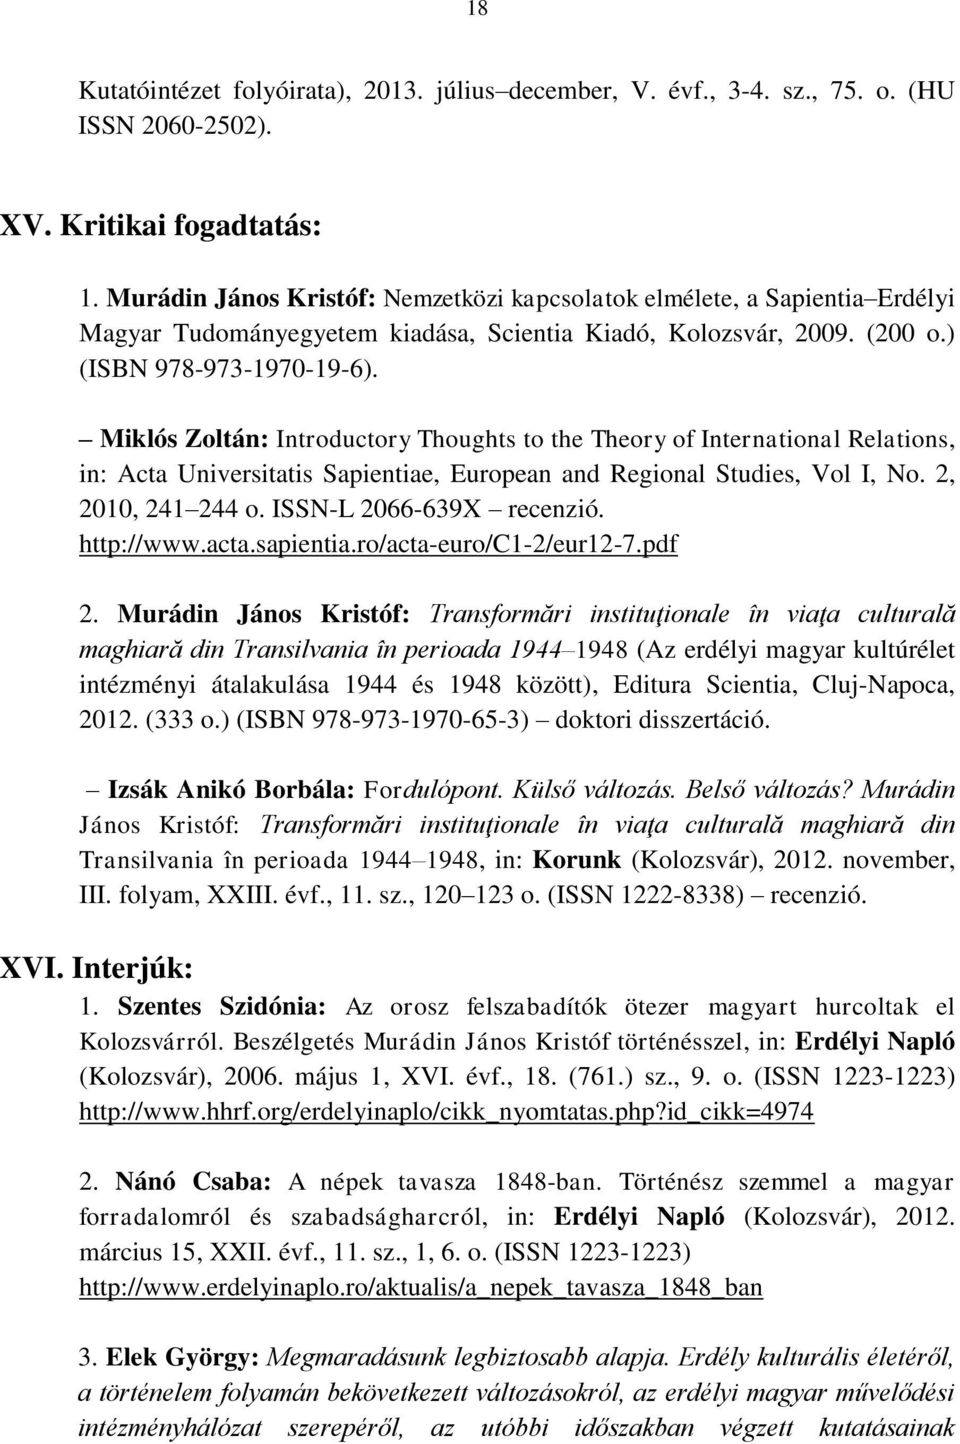 Miklós Zoltán: Introductory Thoughts to the Theory of International Relations, in: Acta Universitatis Sapientiae, European and Regional Studies, Vol I, No. 2, 2010, 241 244 o.